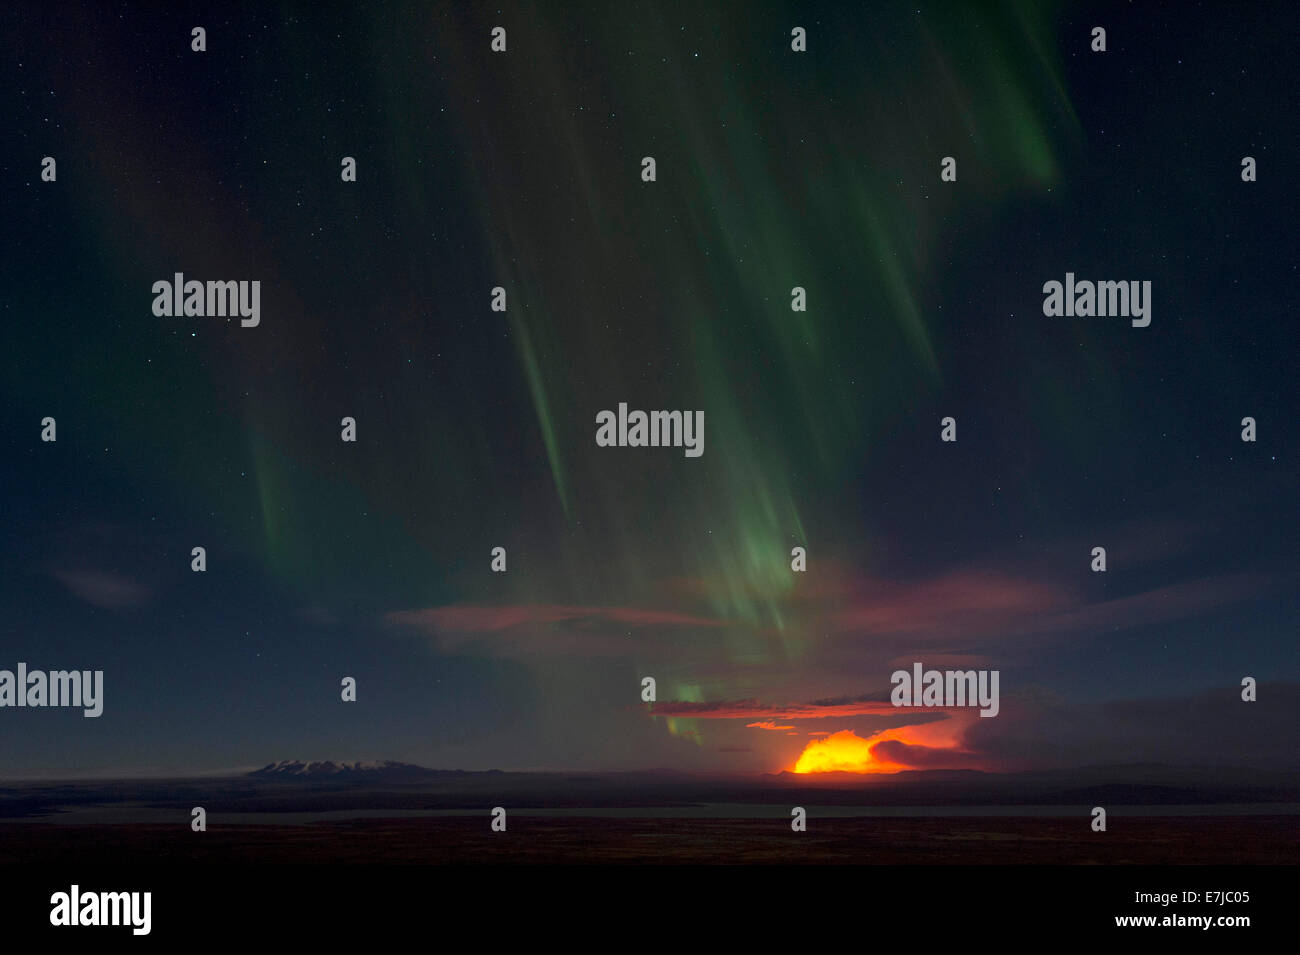 Northern lights and night-time glow of the Holuhraun fissure eruption north of the volcano Bárðarbunga - Stock Image